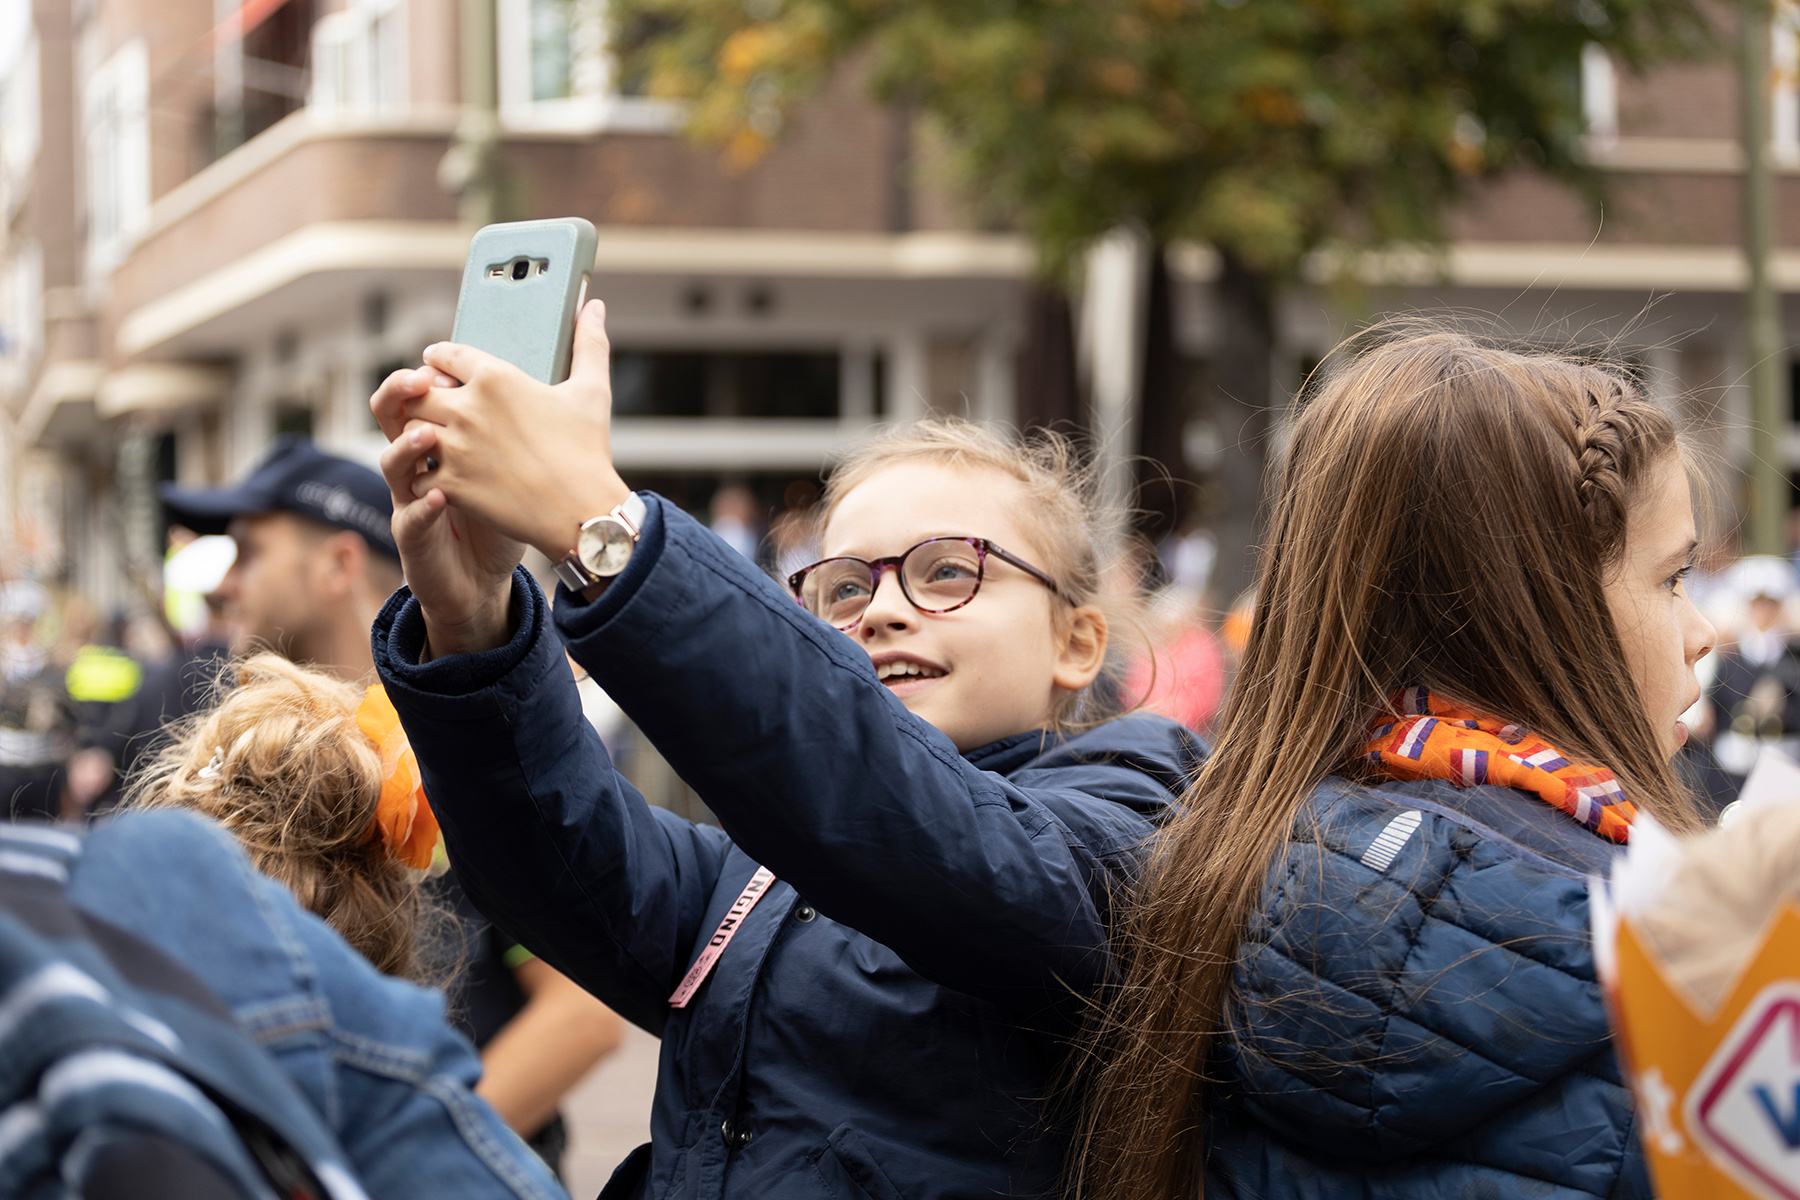 A young girl taking a selfie in The Hague